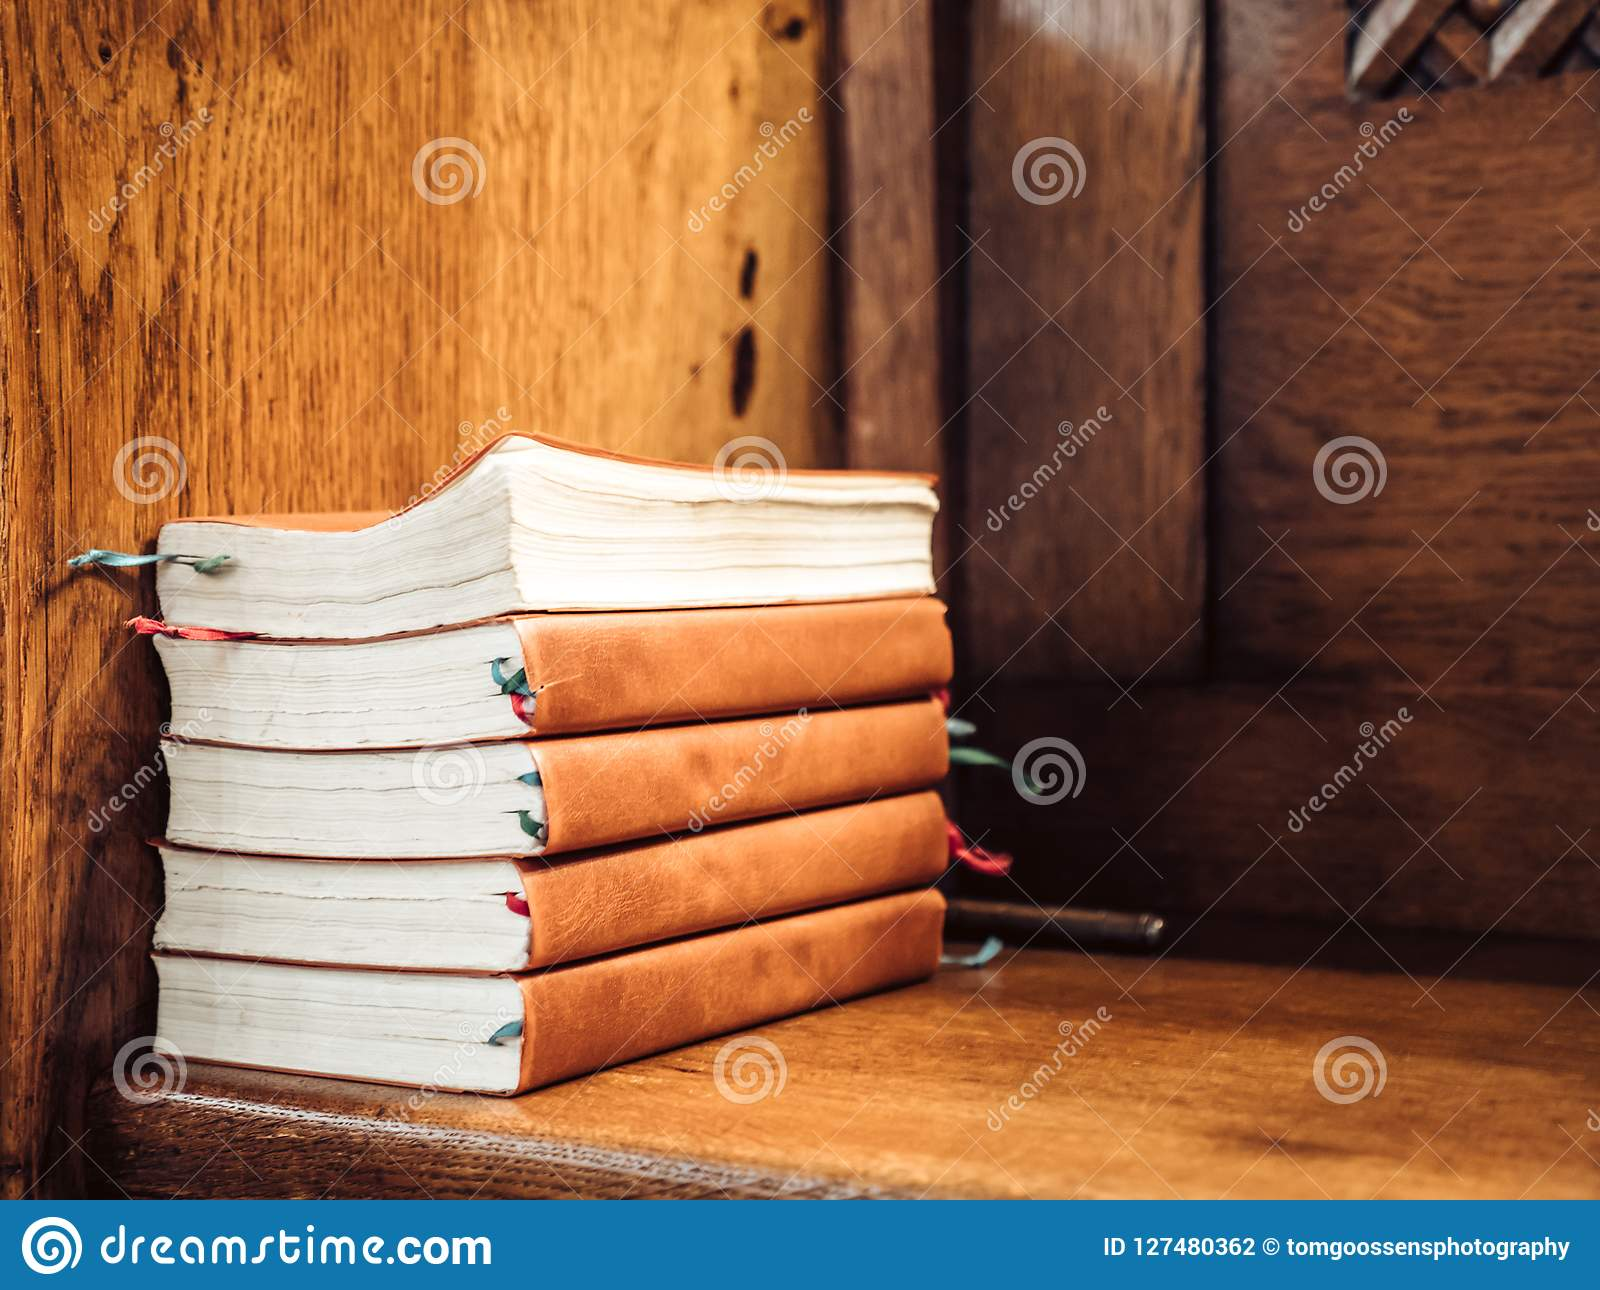 Stack of songbooks on a wooden bench in a church